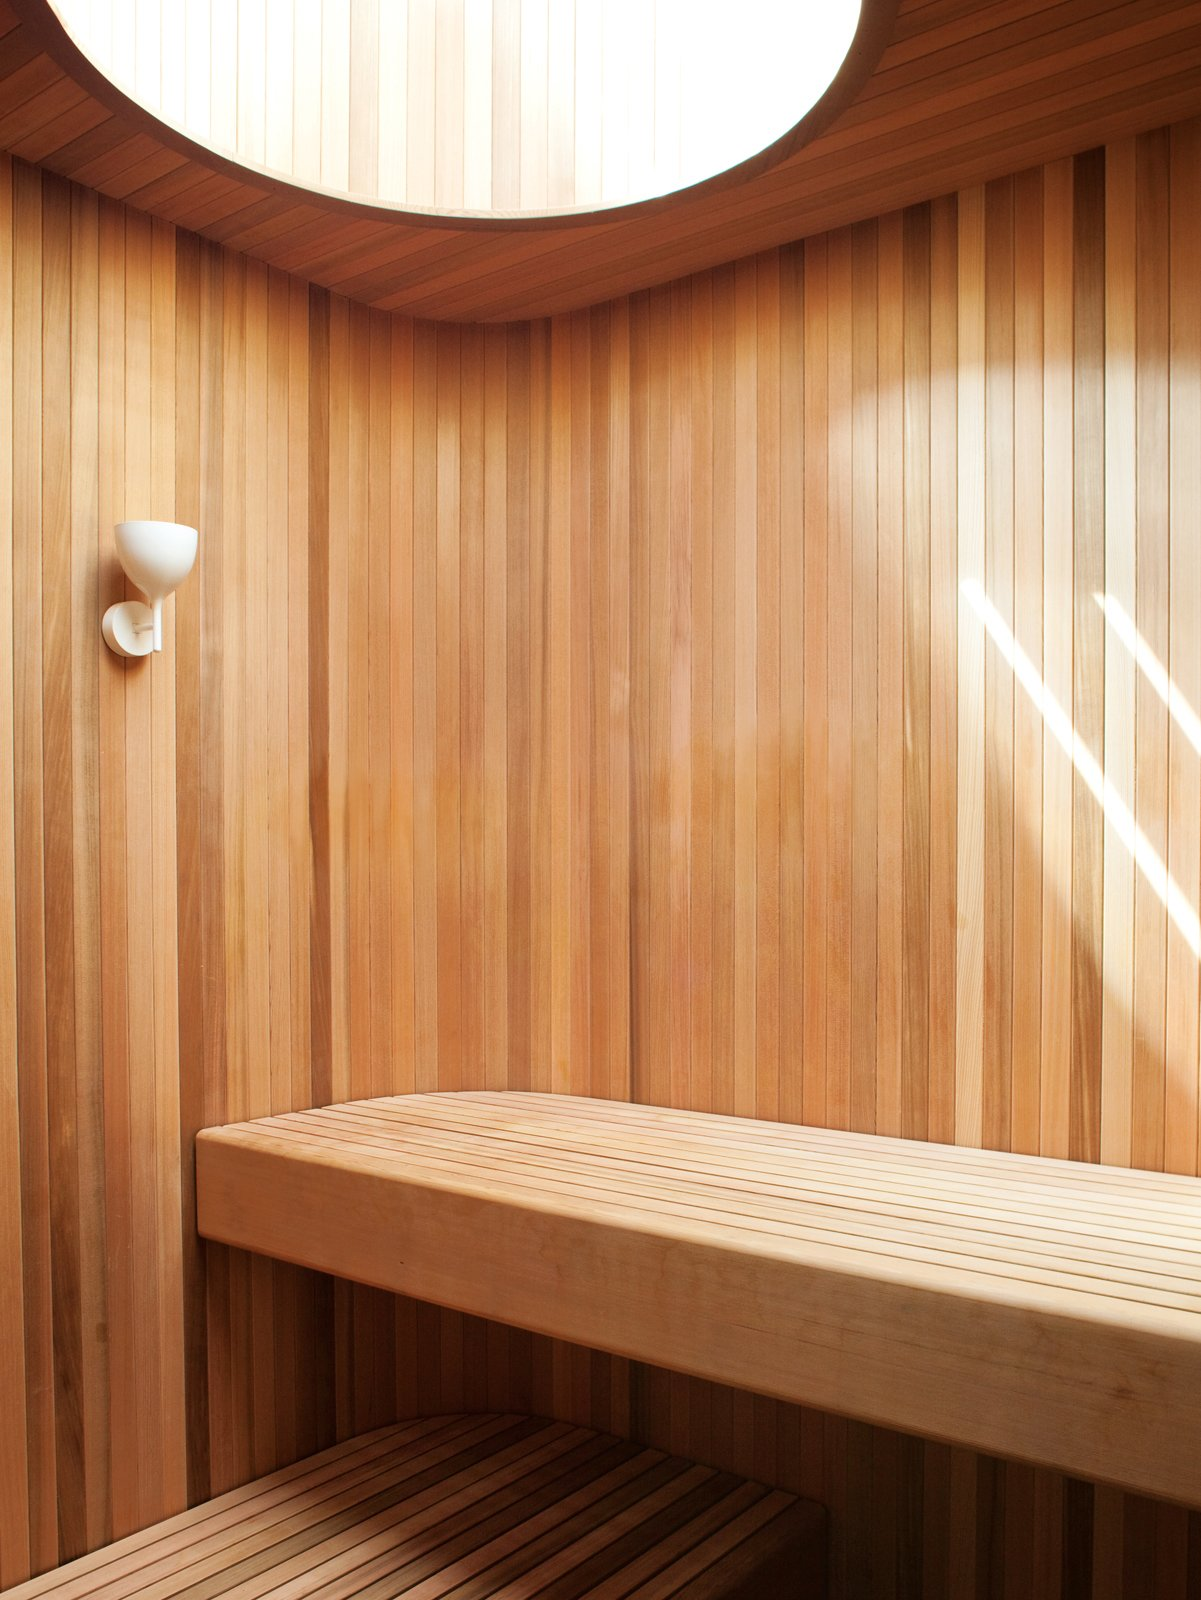 Sauna, doesn't get used enough!  The Deam House by Lara Deam